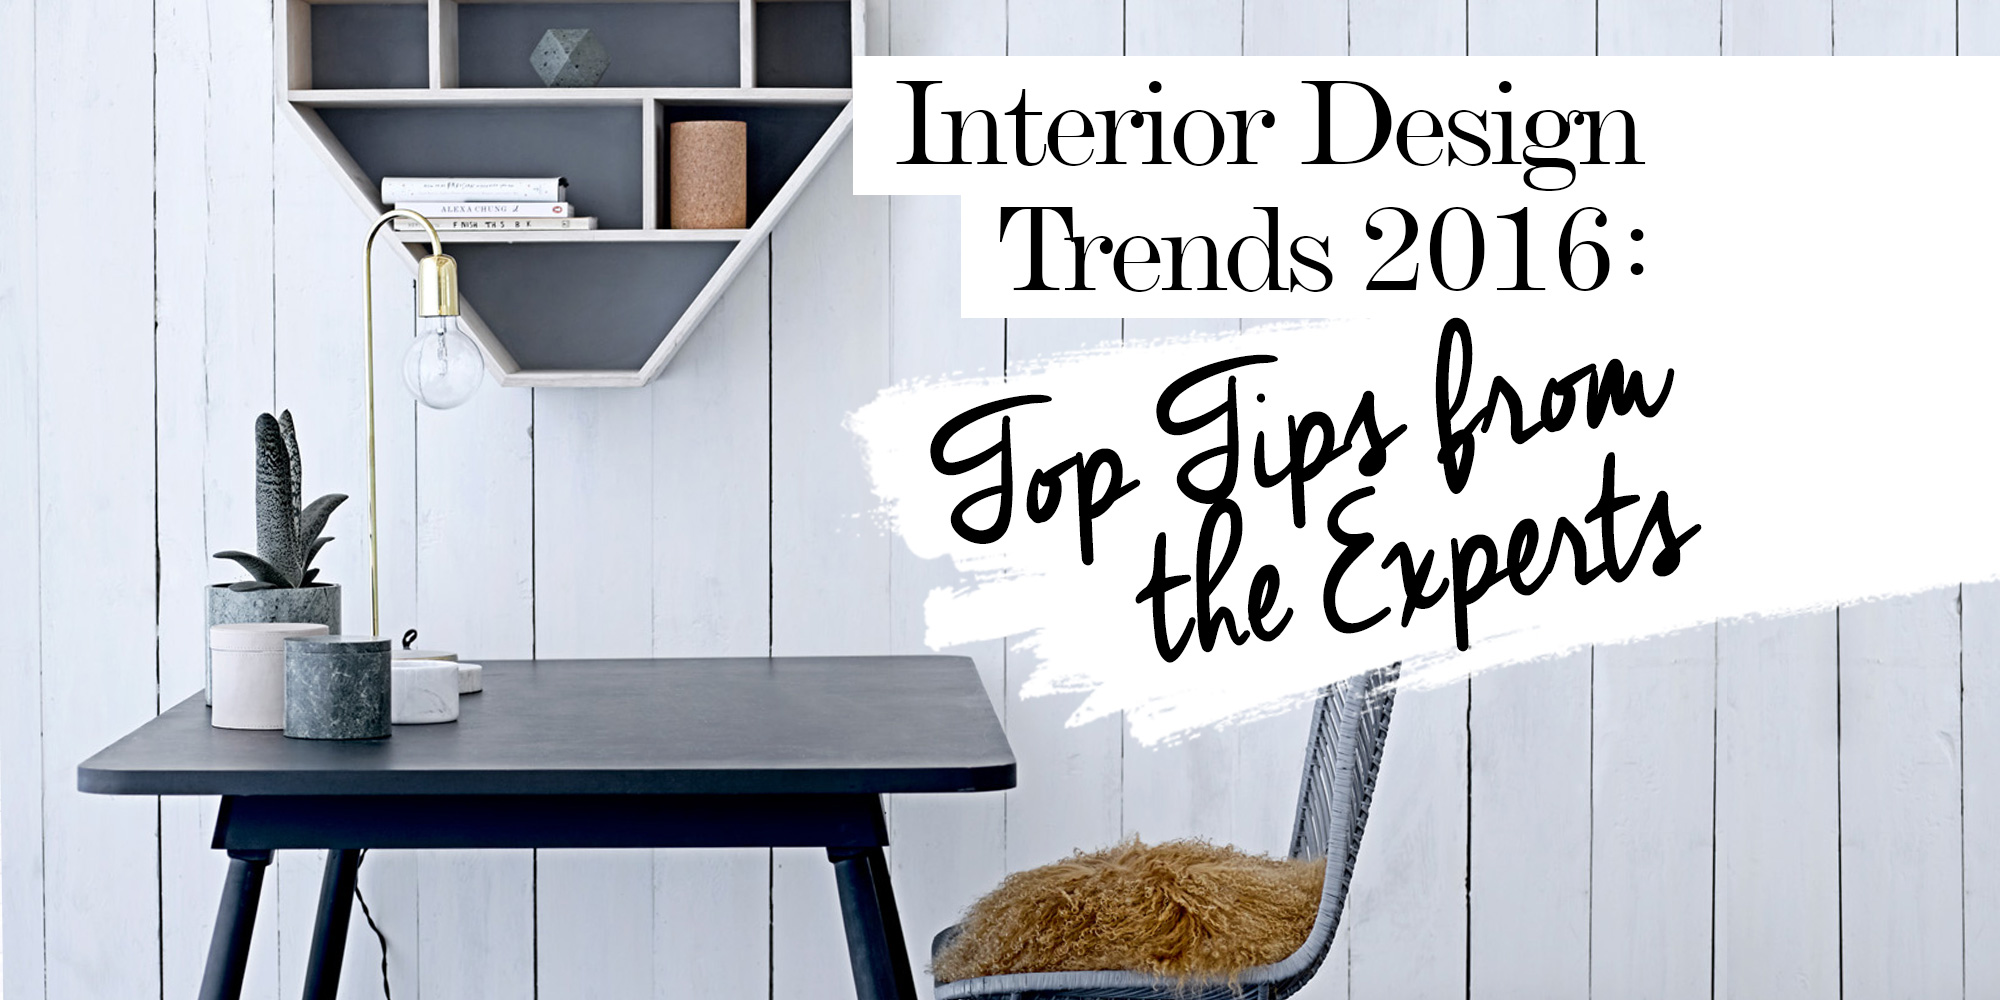 2016 Interior Design Trends Top Tips From the Experts The LuxPad